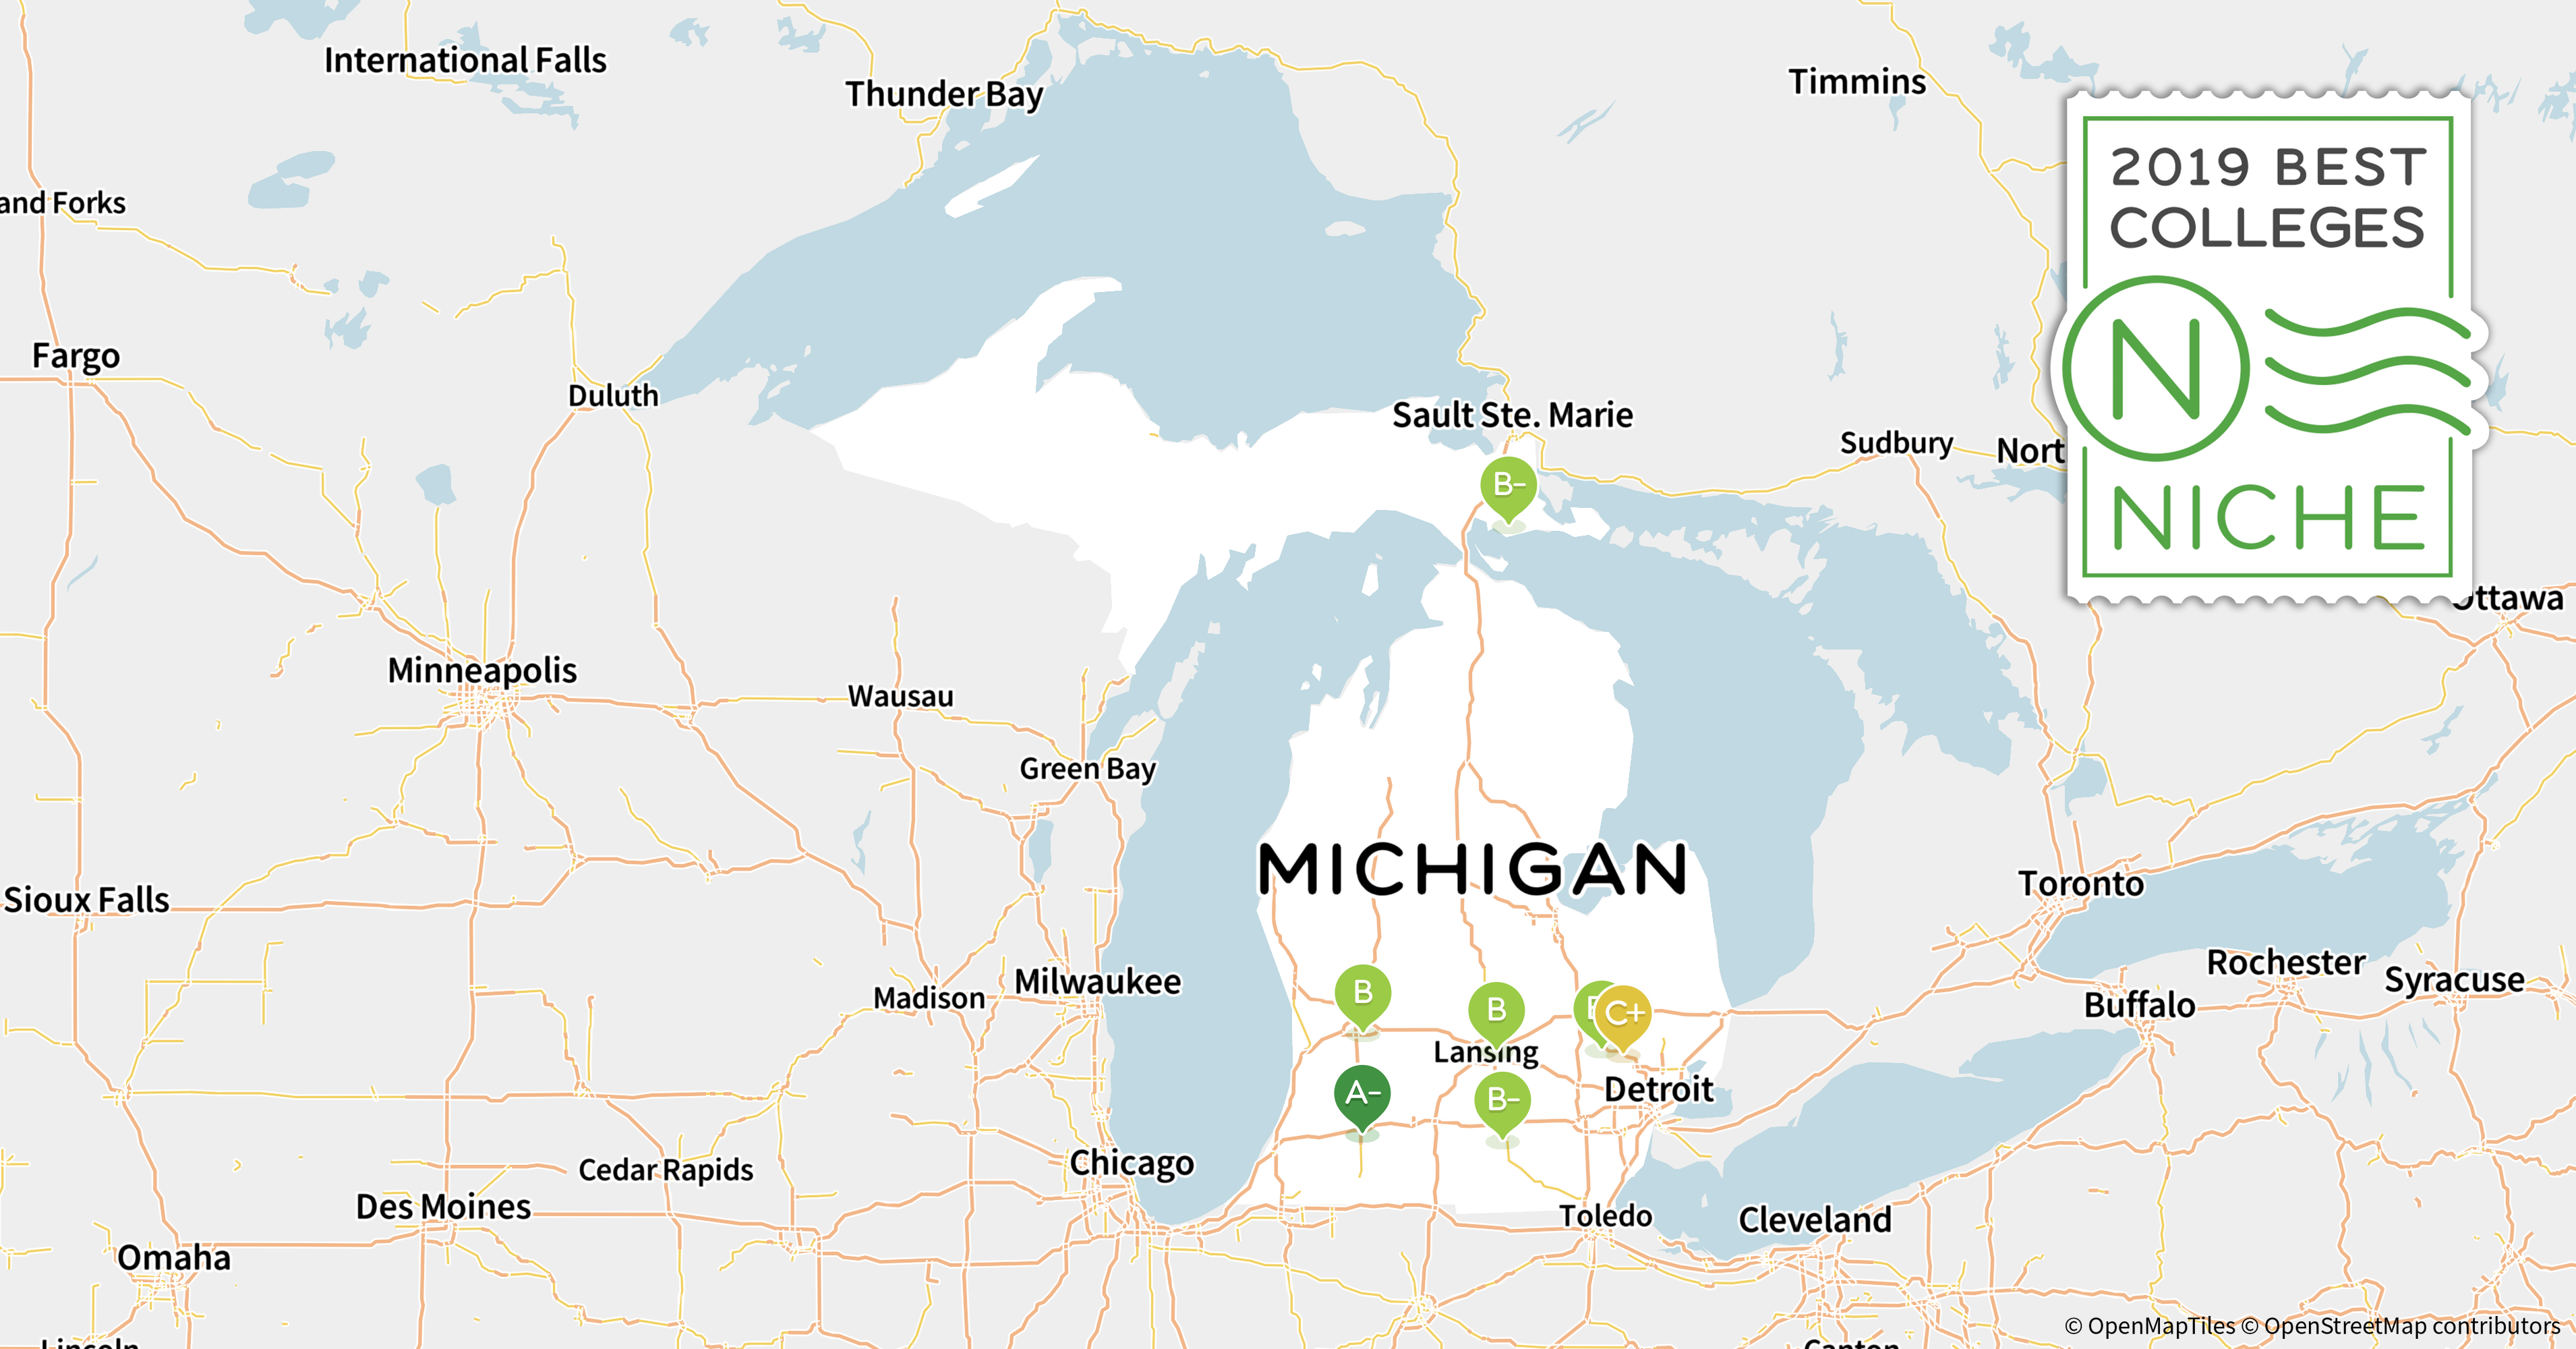 Spring Arbor Michigan Map.2019 Best Colleges In Michigan Niche